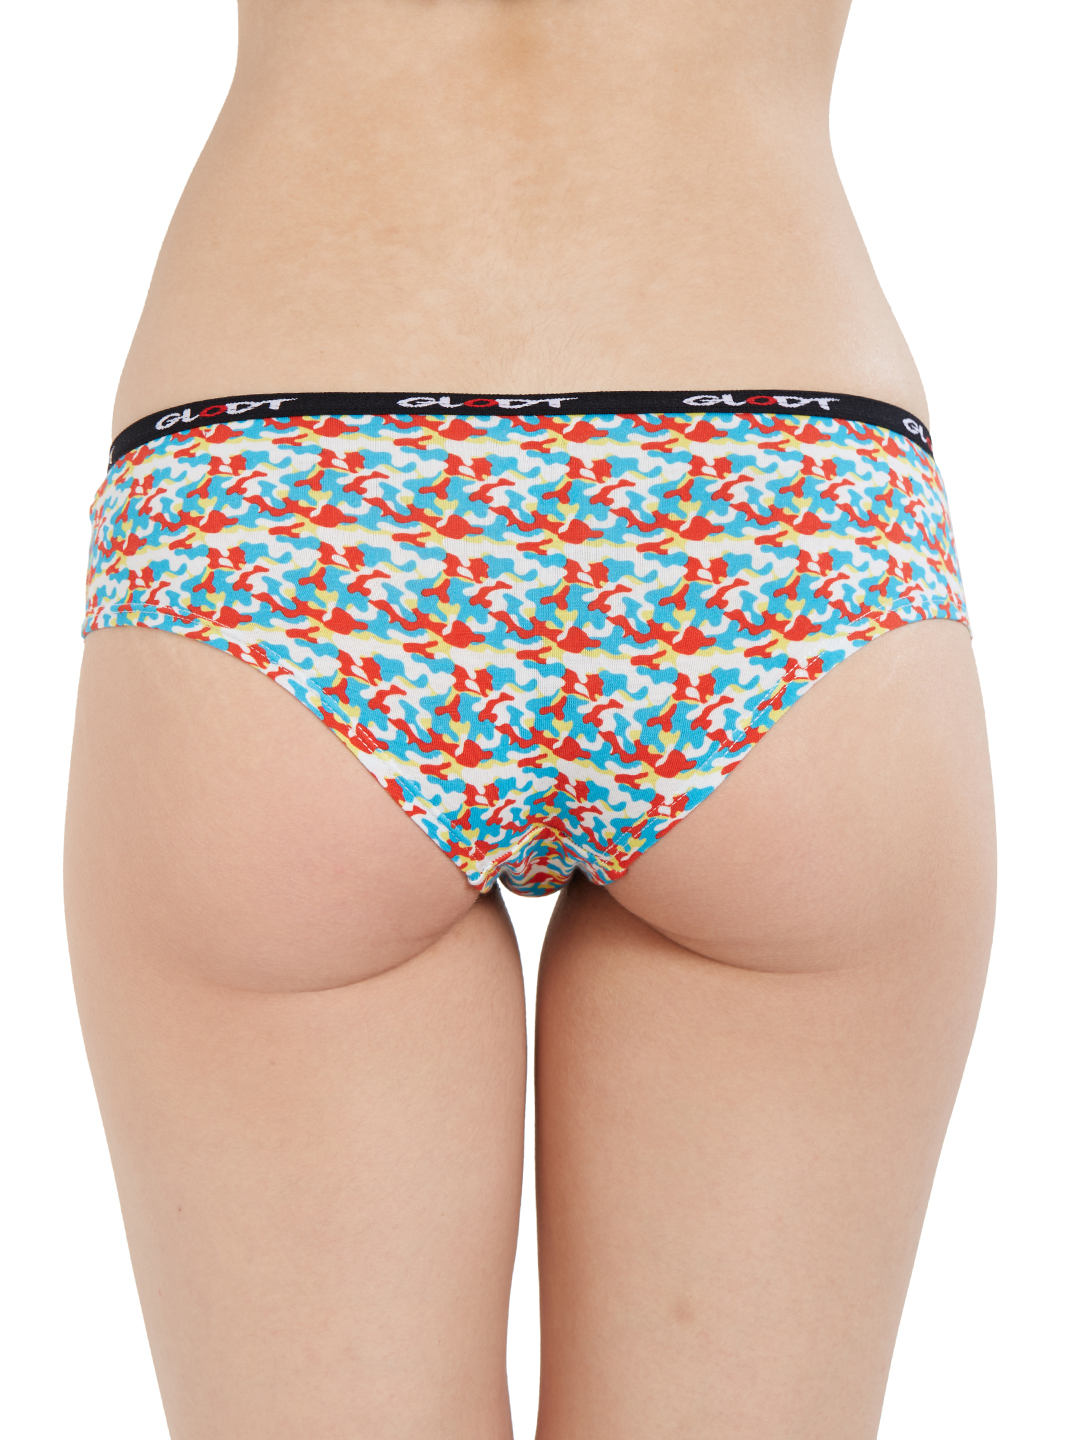 GLODT | Womens Girls Camouflage Print Pima Cotton Hipster Panties